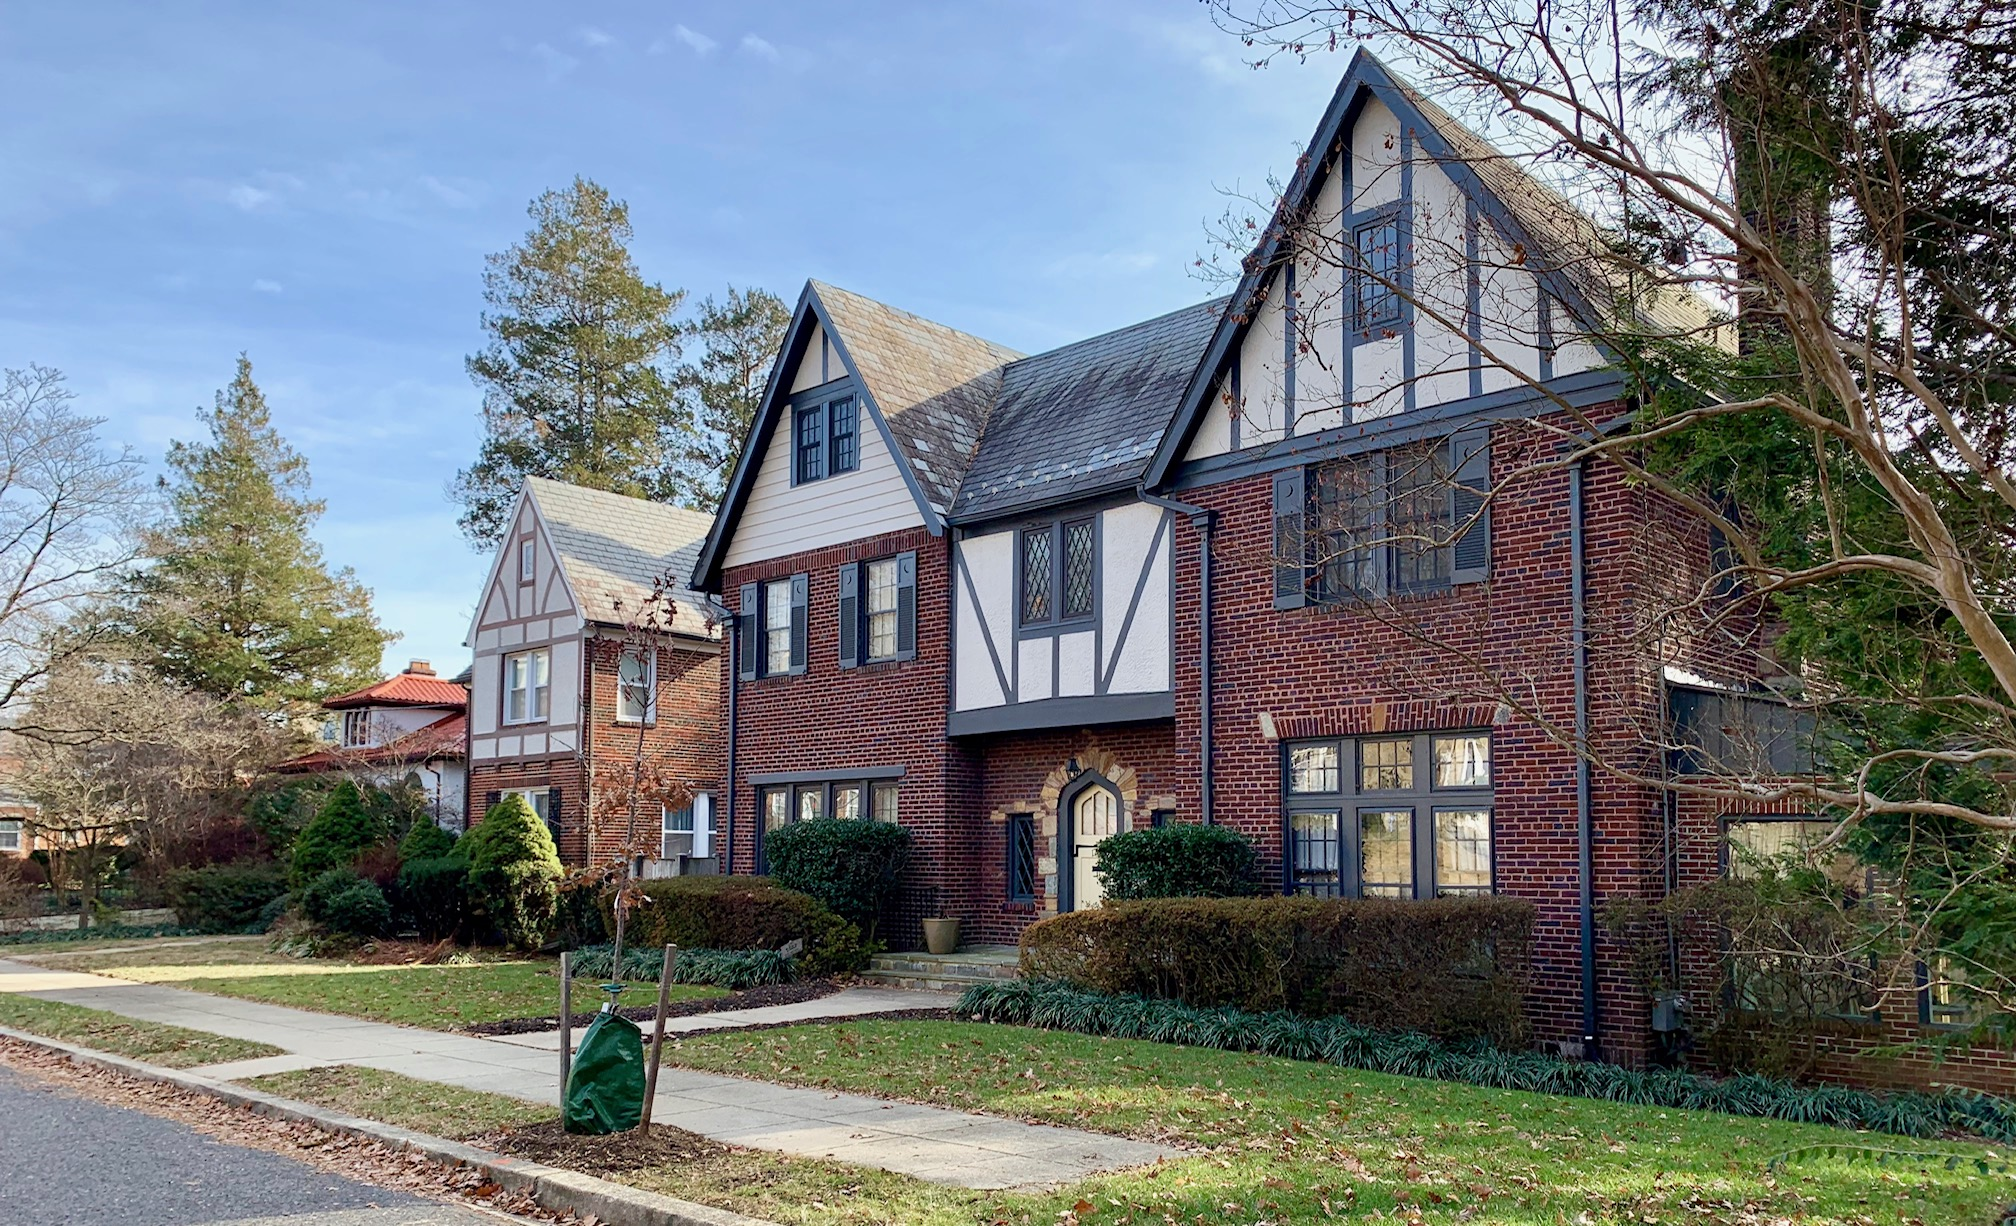 Brightwood, DC Detached Homes For Sale. Newest Inventory. on